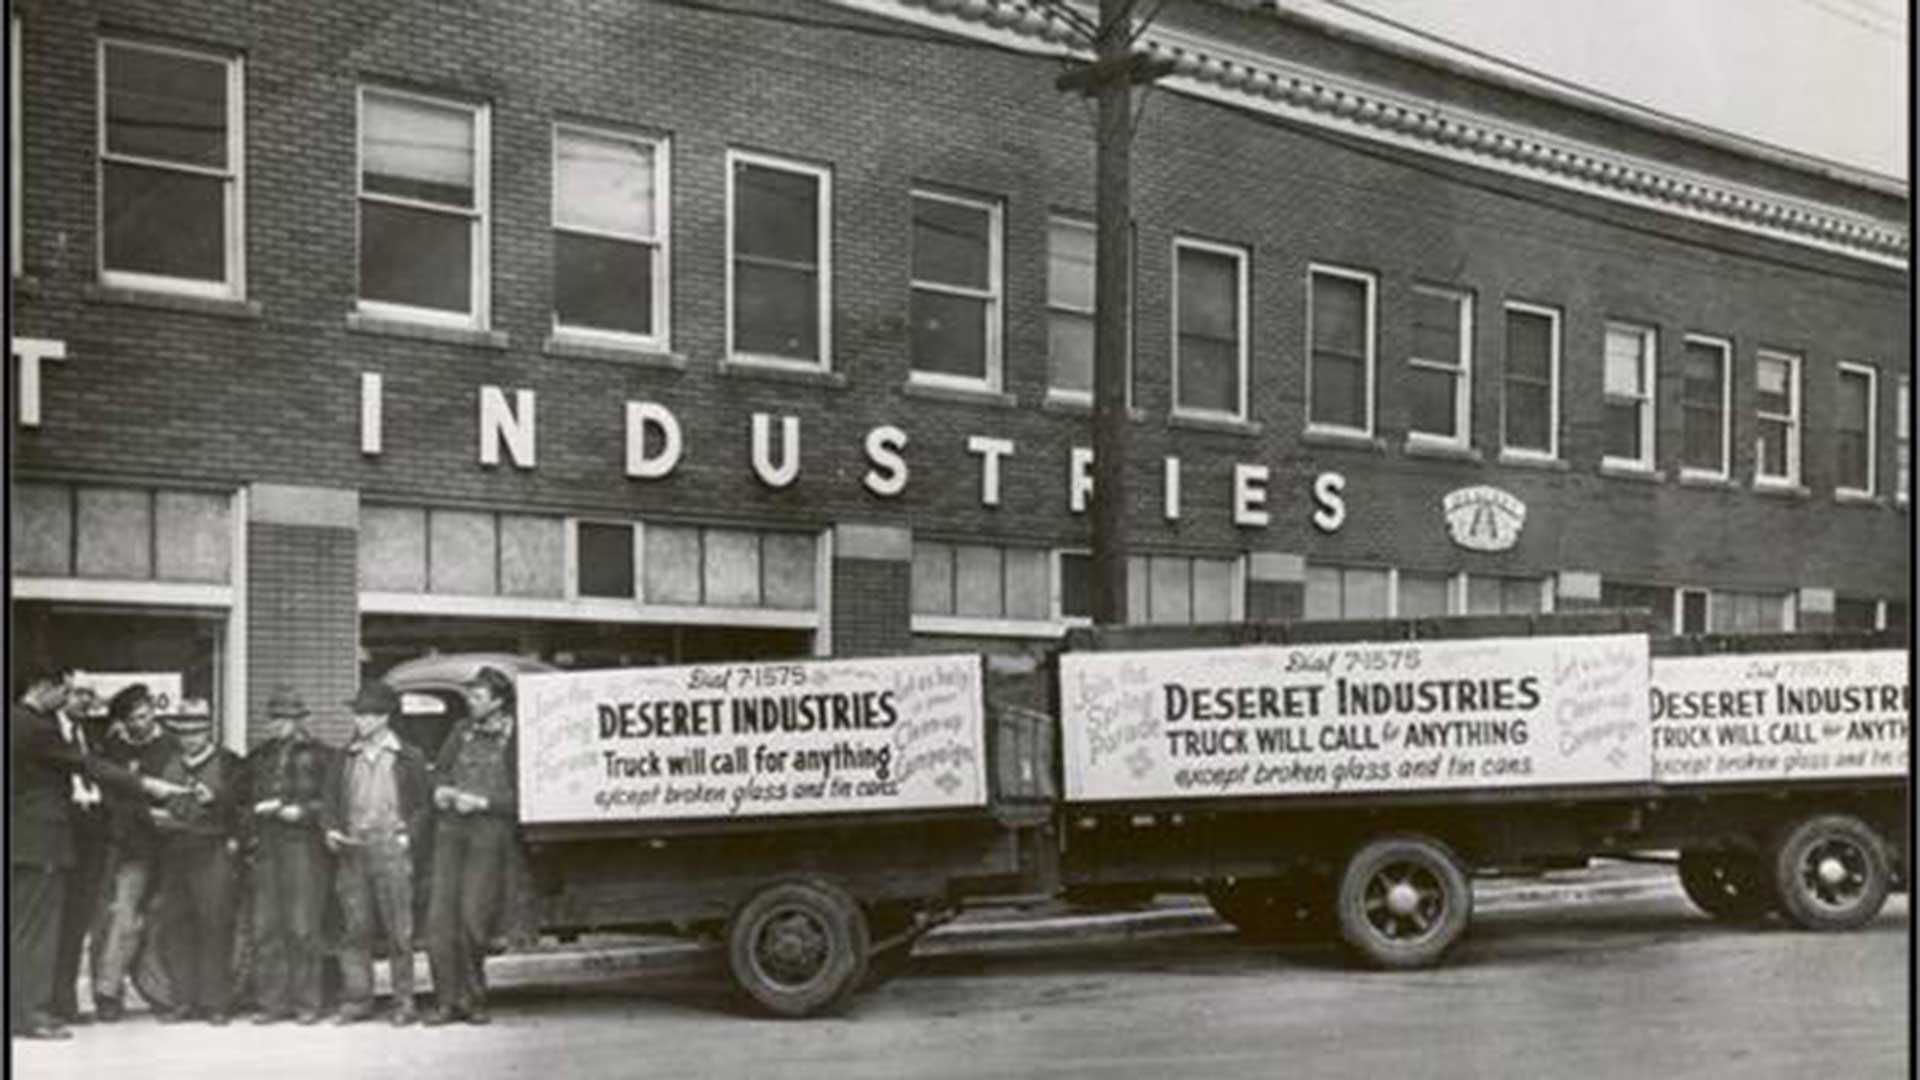 Stewart B. Eccles, Deseret Industries manager, instructs truck drivers at the Sugarhouse Deseret Industries in 1941.